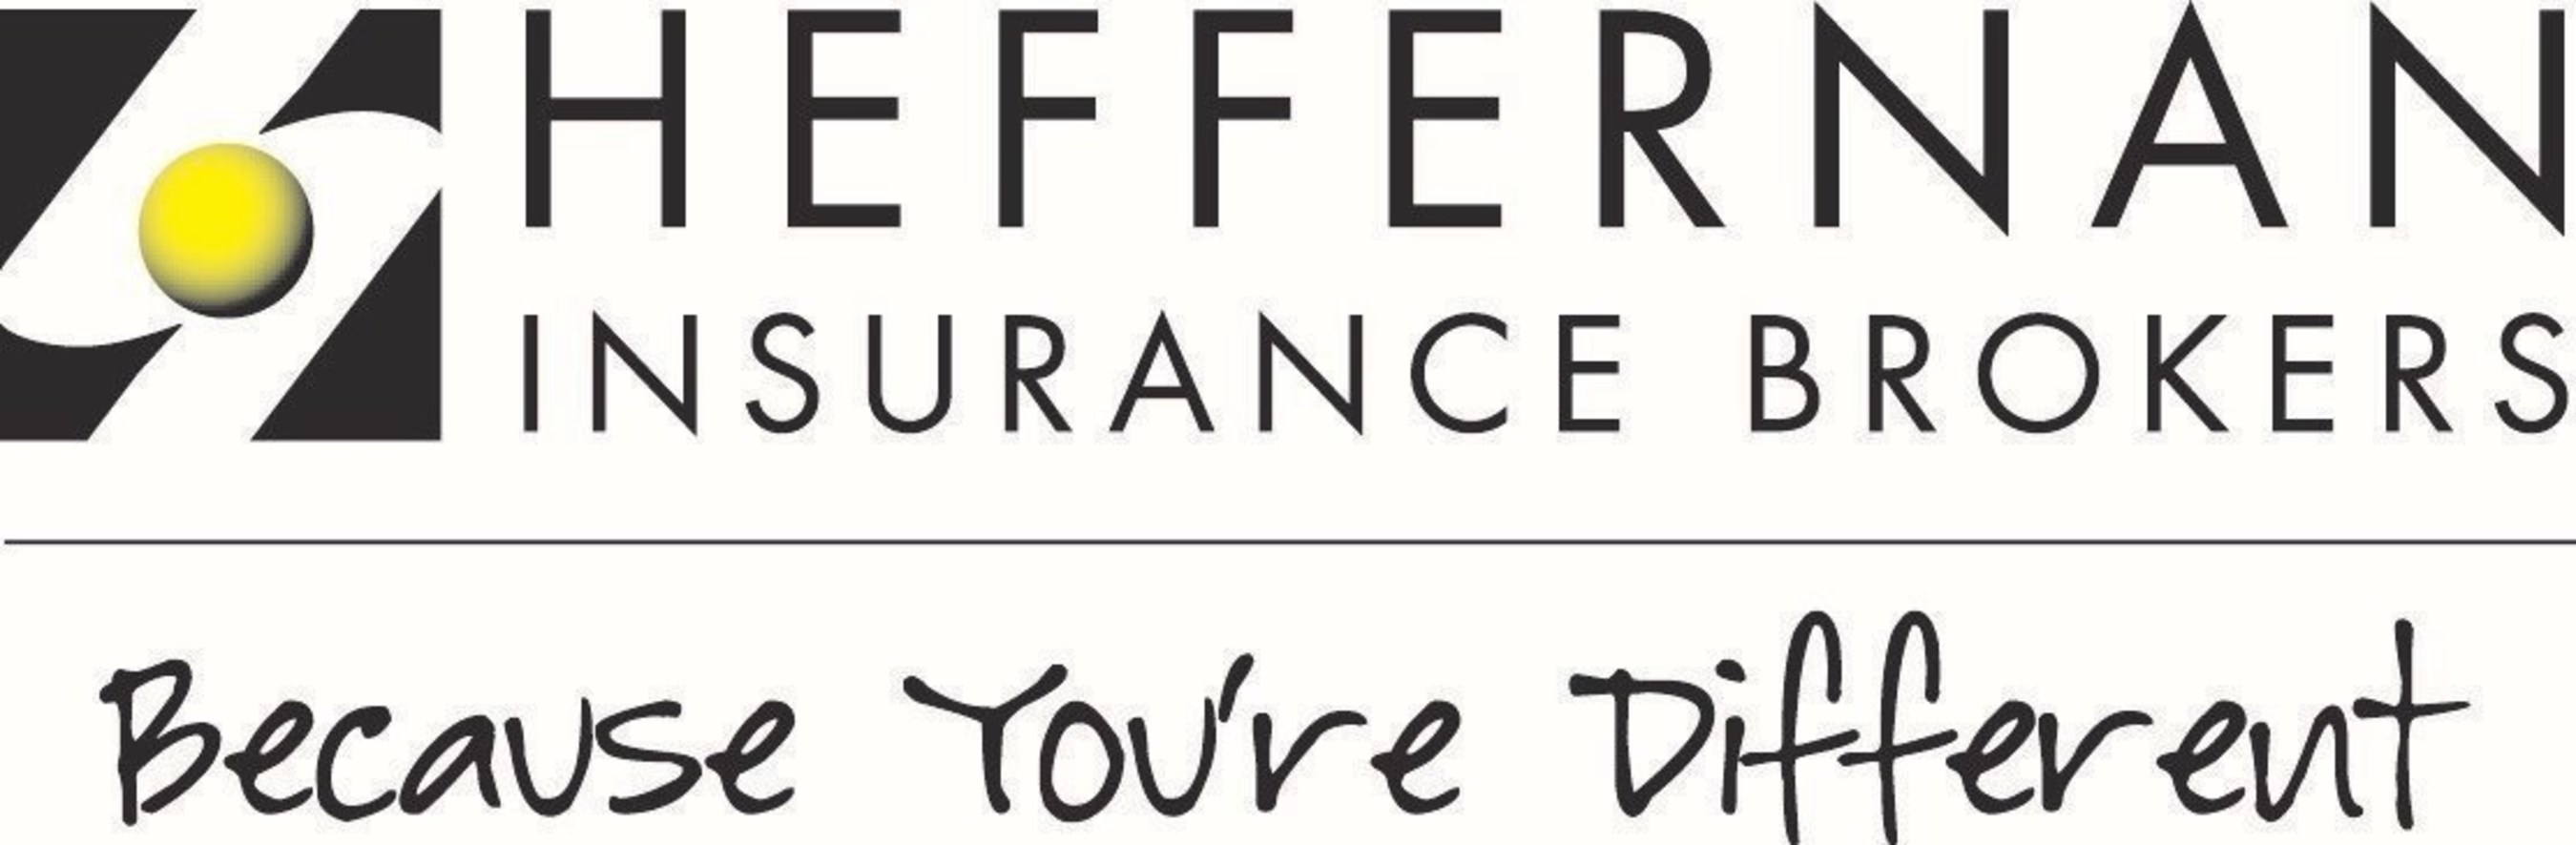 Heffernan Insurance Brokers logo